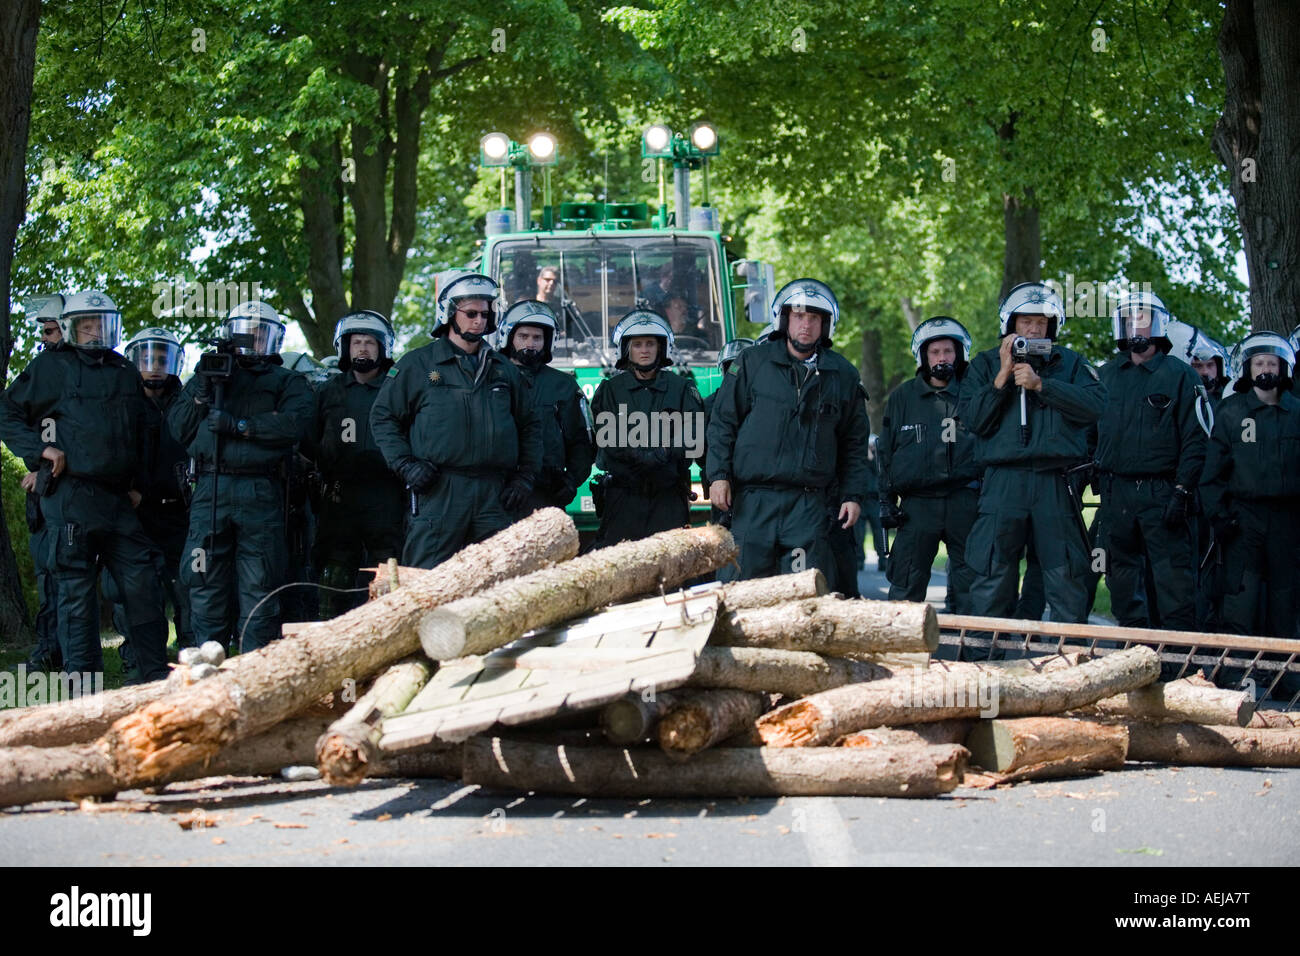 Police officers behind a barricade, access road to the G-8 summit, Mecklenburg-Western Pomerania, Germany Stock Photo